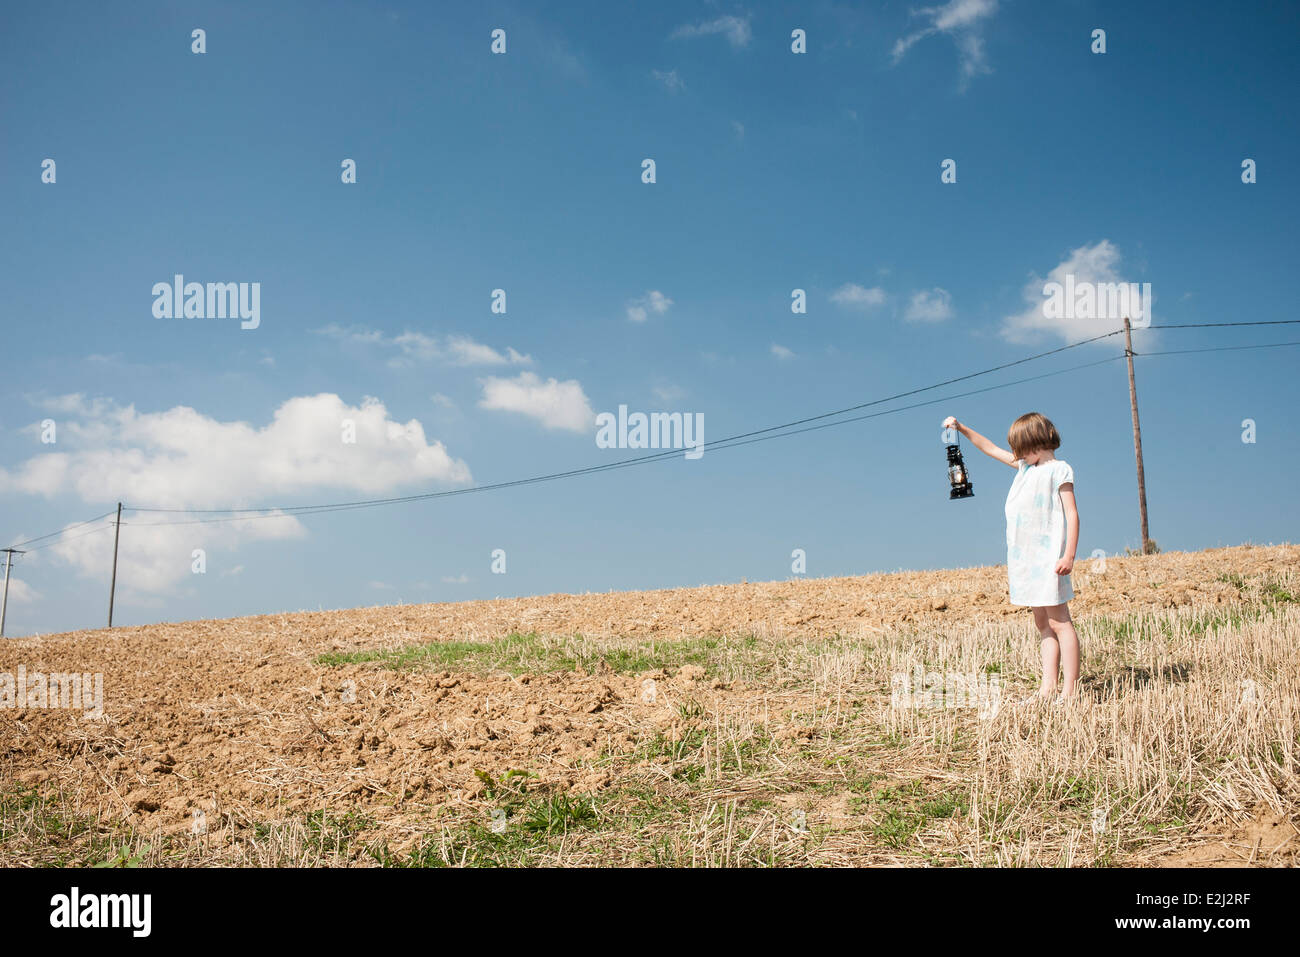 Girl standing in field with old-fashioned lantern, looking at power line - Stock Image